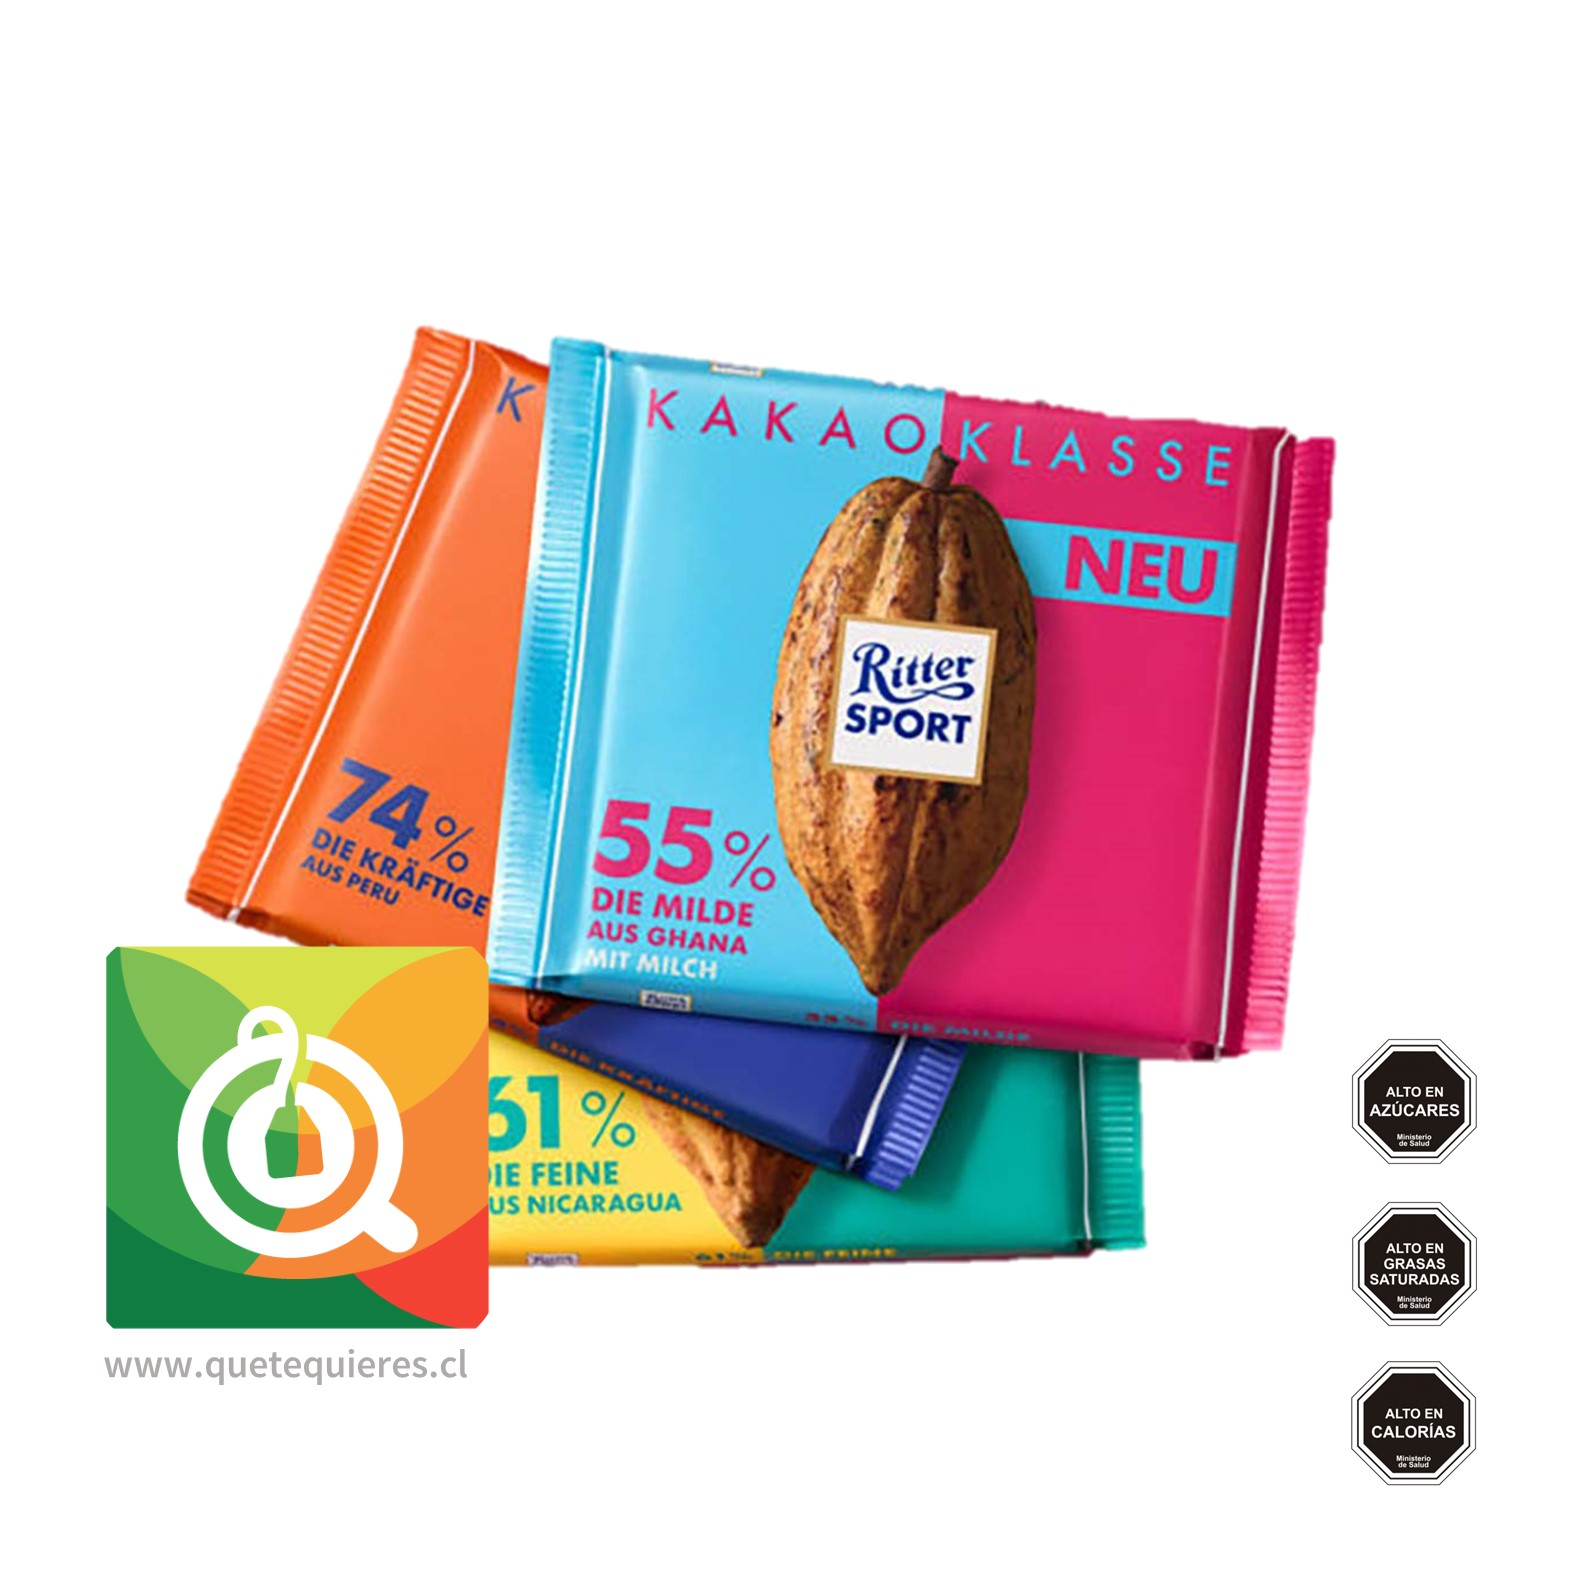 Ritter Sport Chocolate Barra 74% Cacao- Image 2